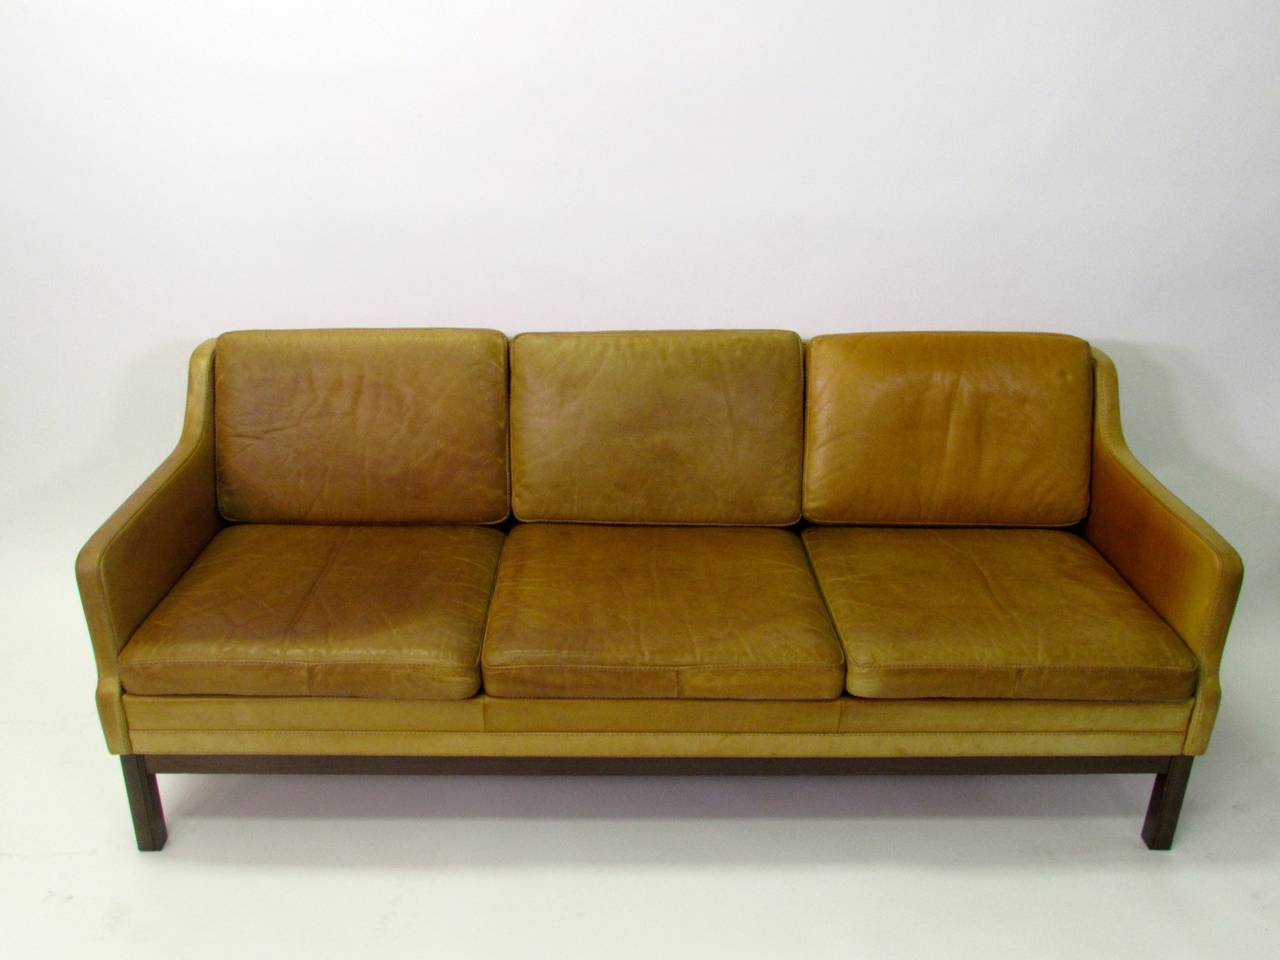 this mid century modern kurt rasmussen leather sofa is no longer